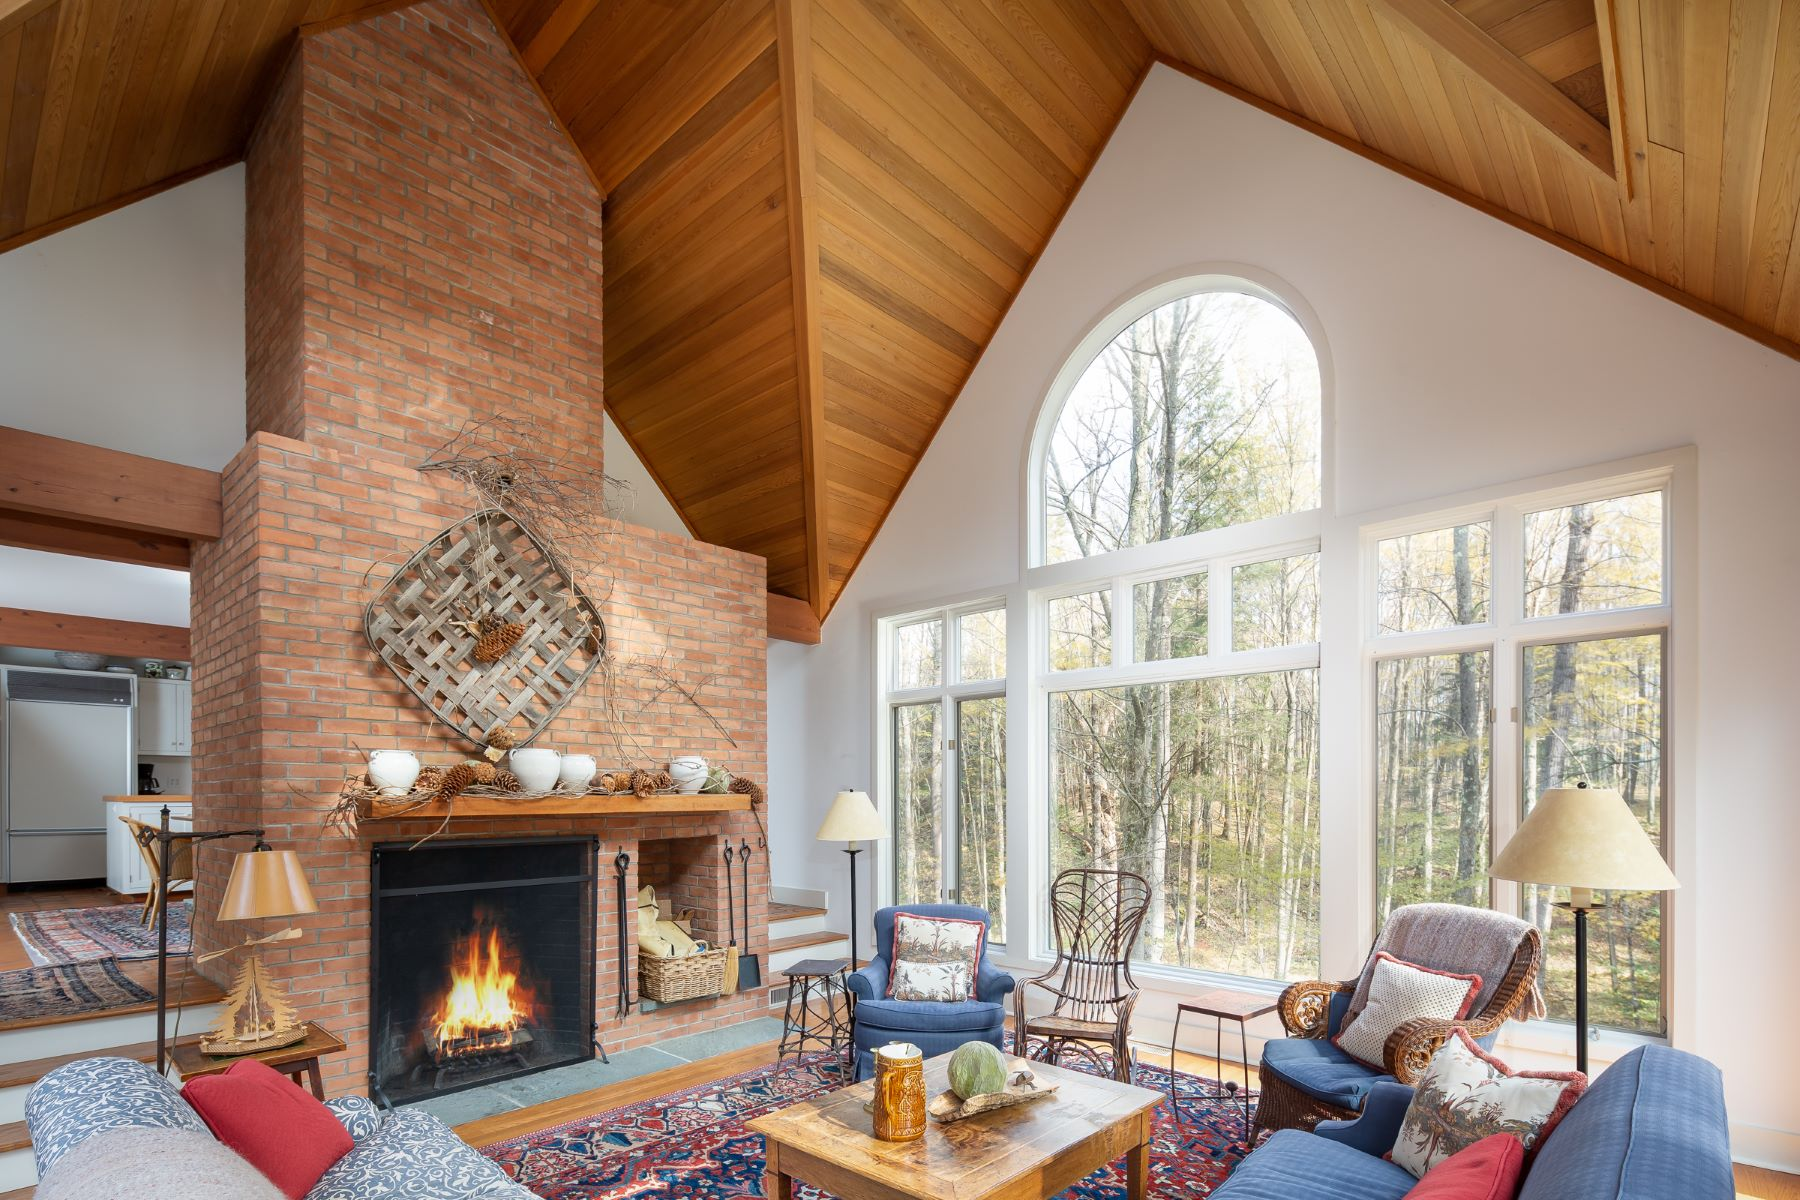 Single Family Homes for Sale at Tranquil Contemporary on a 13.5 Acre Wooded Lot 1499 Mill River Great Barrington Rd New Marlborough, Massachusetts 01230 United States